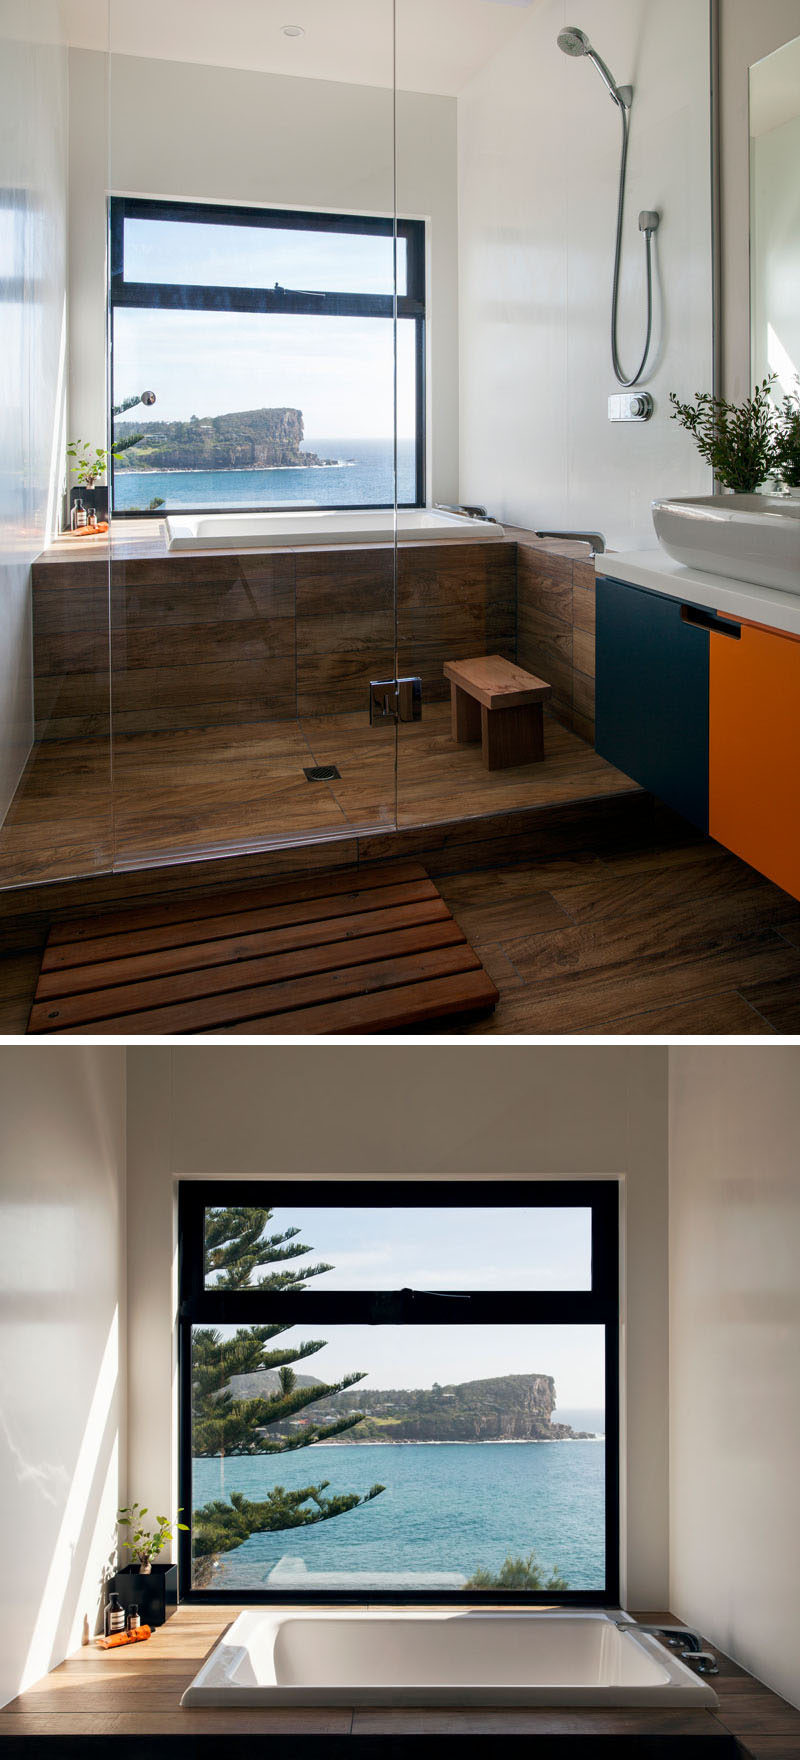 This bathroom has a large window that provides an uninterrupted view of the ocean and beach below from the bath.